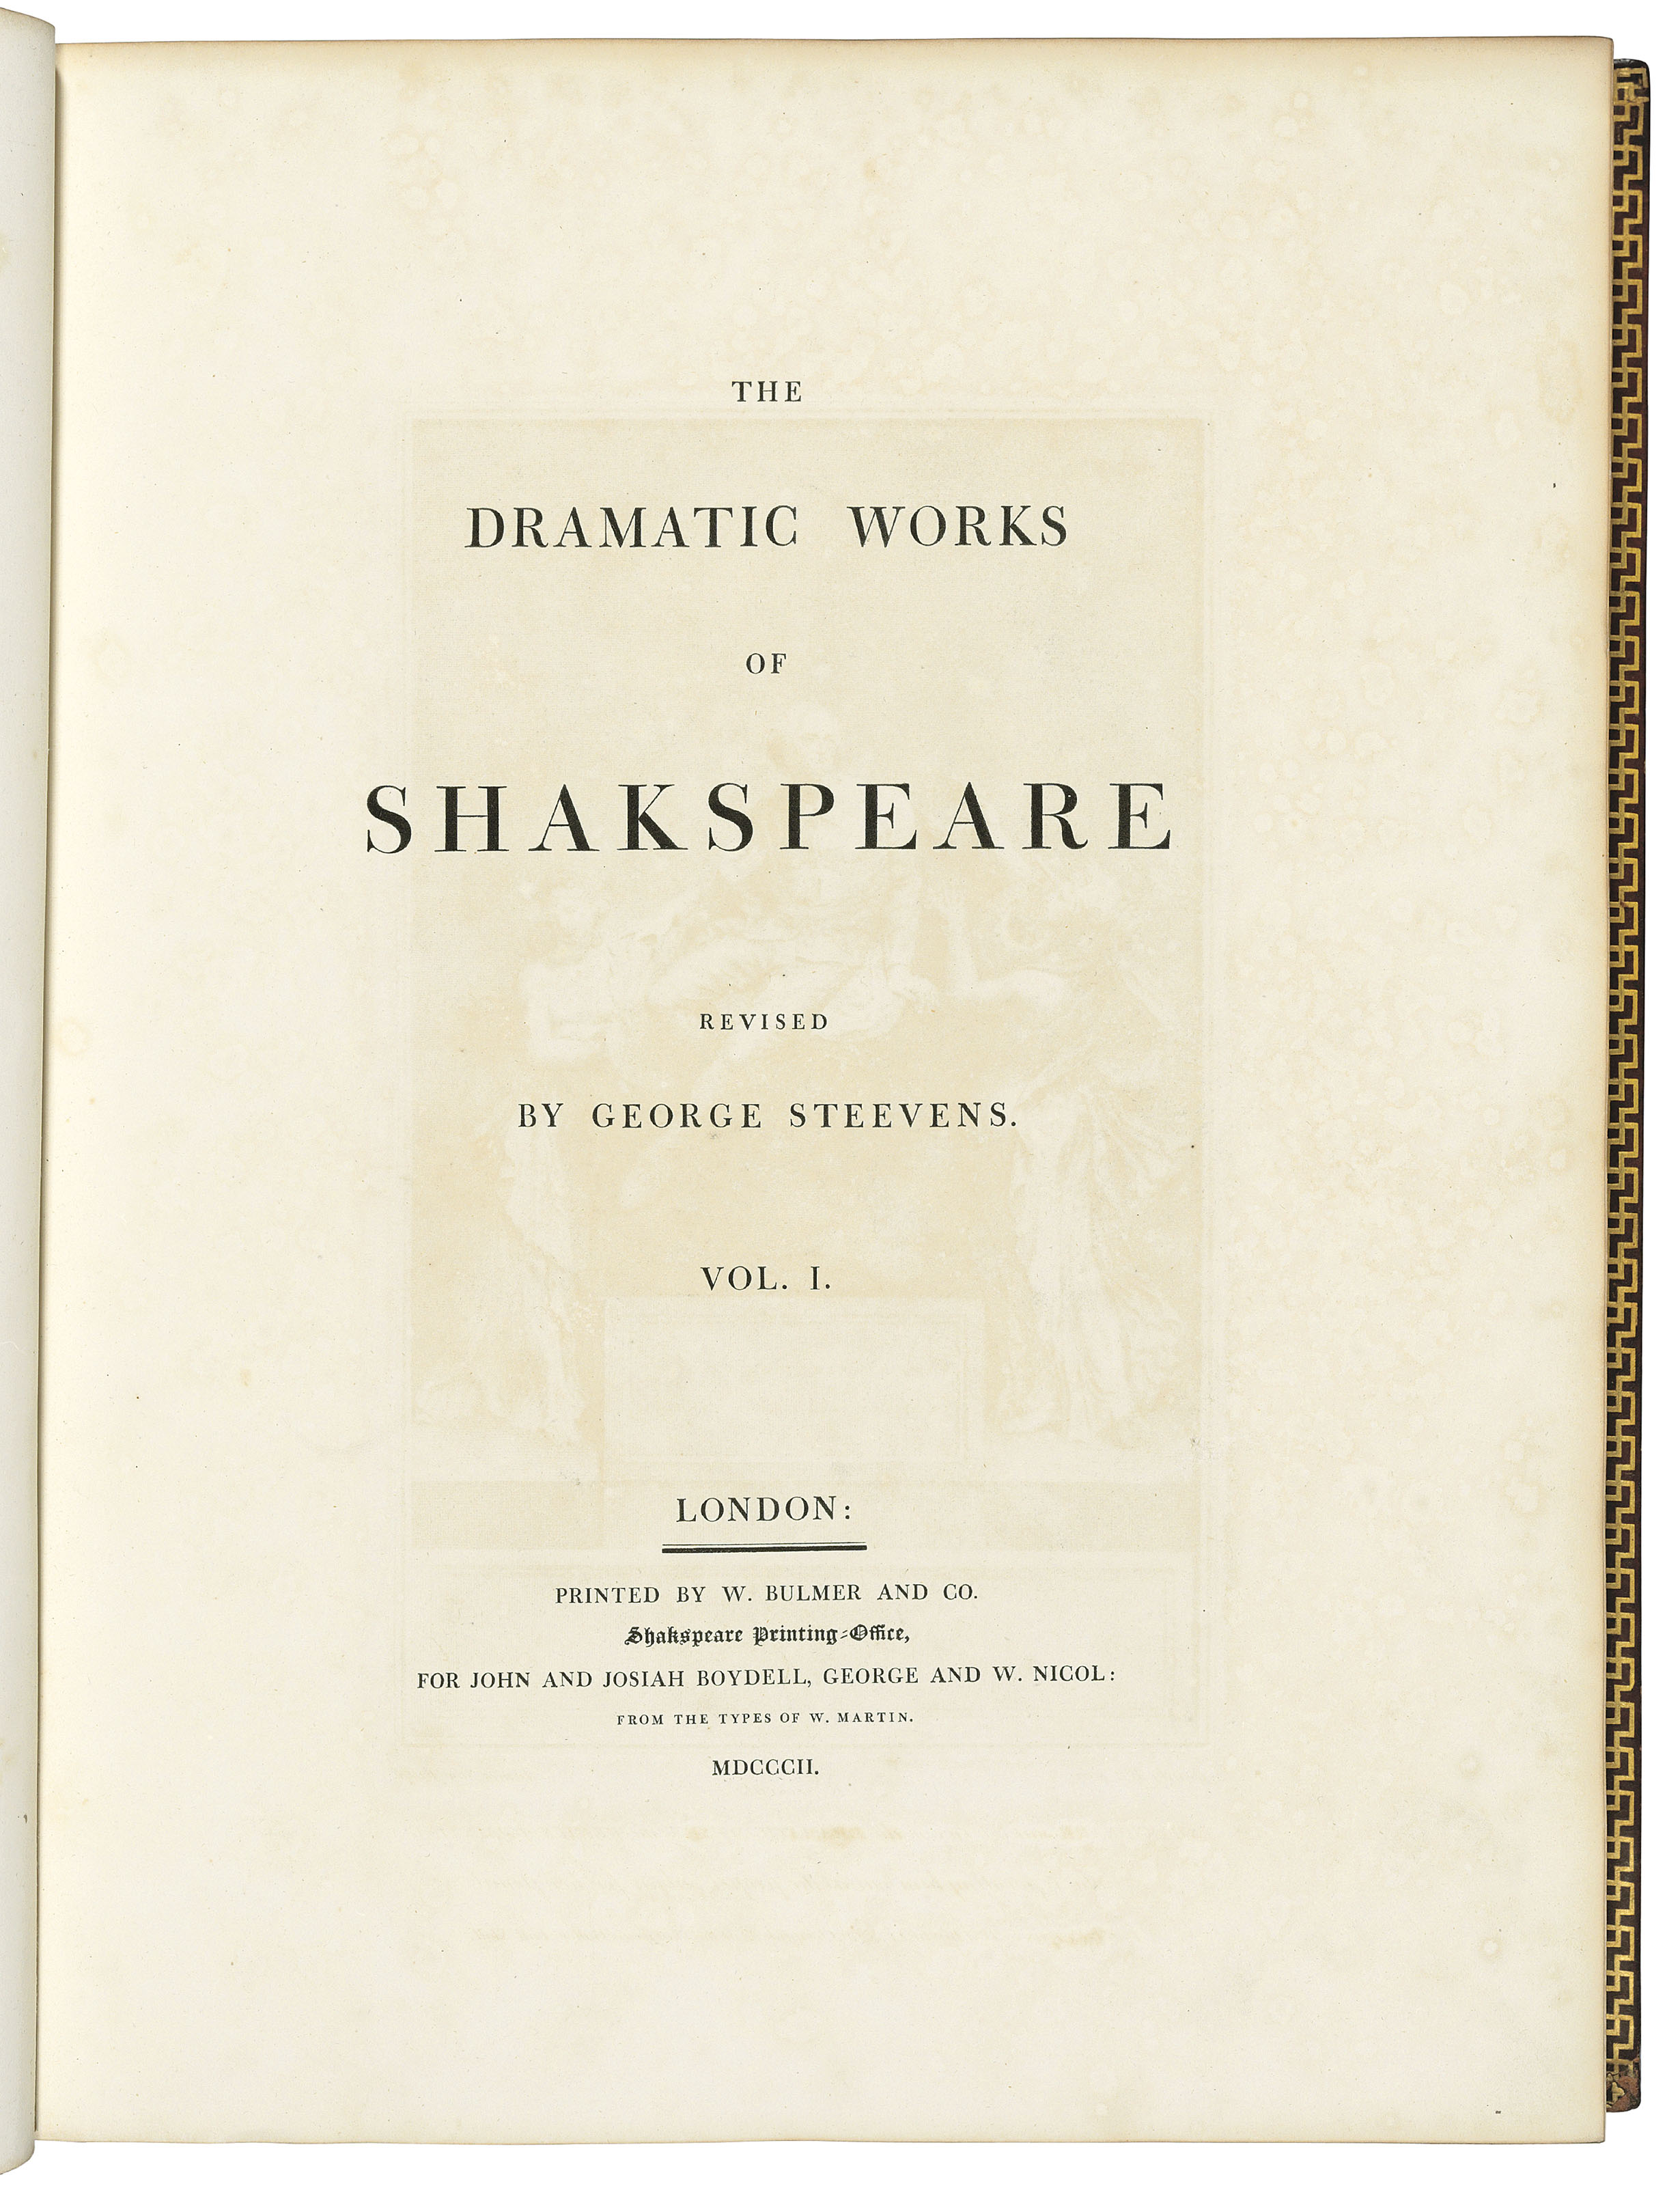 SHAKESPEARE, William (1564-1616). The Dramatic Works of Shakespeare revised by George Steevens. London: W. Bulmer and Co., Shakespeare Printing-Office, for John and Josiah Boydell, George and W. Nicol, from the types of W. Martin, 1802.